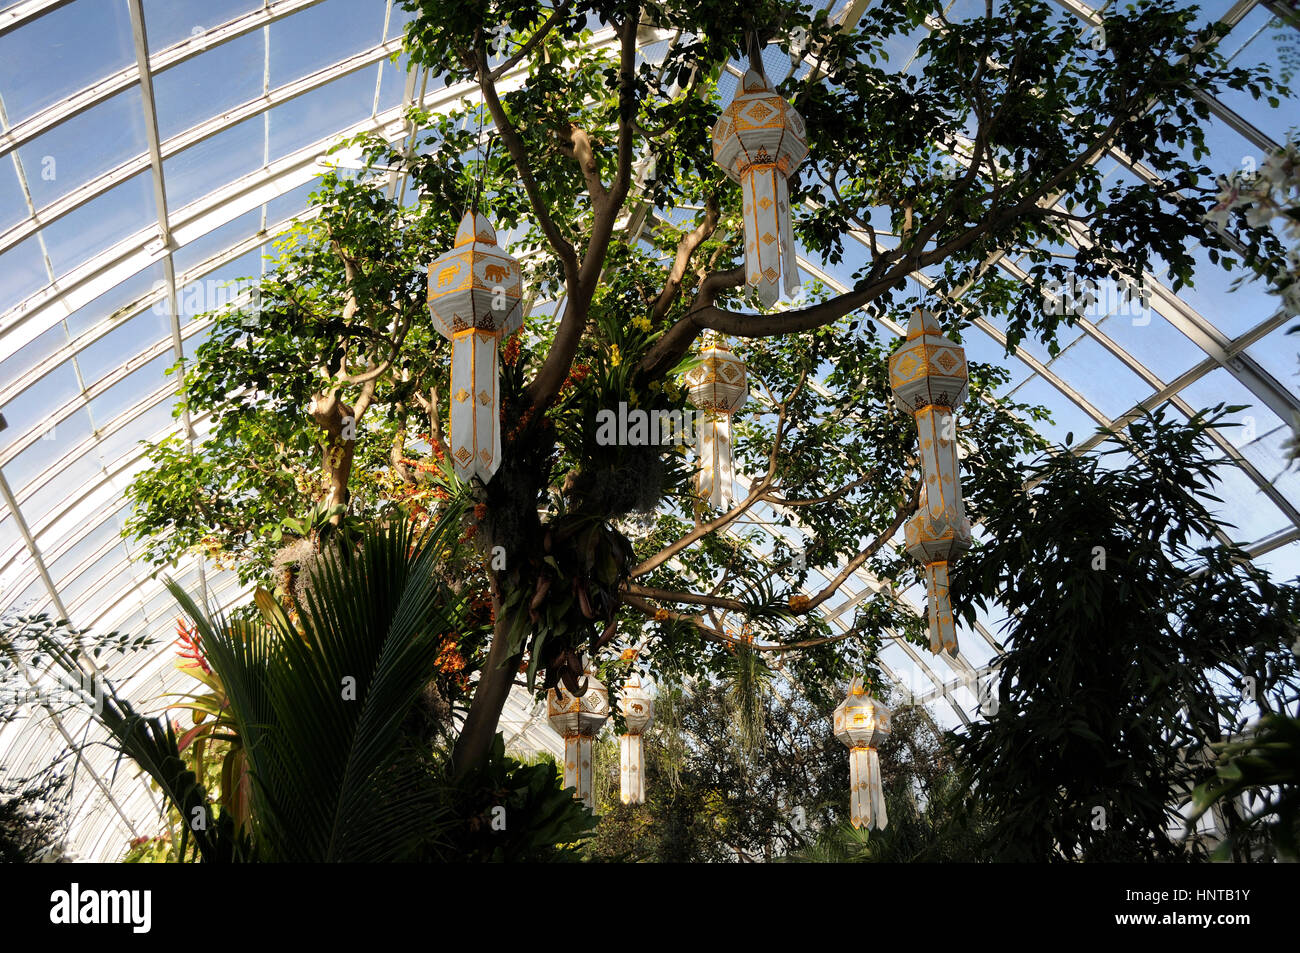 New York Botanical Garden, New York, USA, 16th February 2017. Lanterns hung in a tree to evoke the floating lanterns - Stock Image